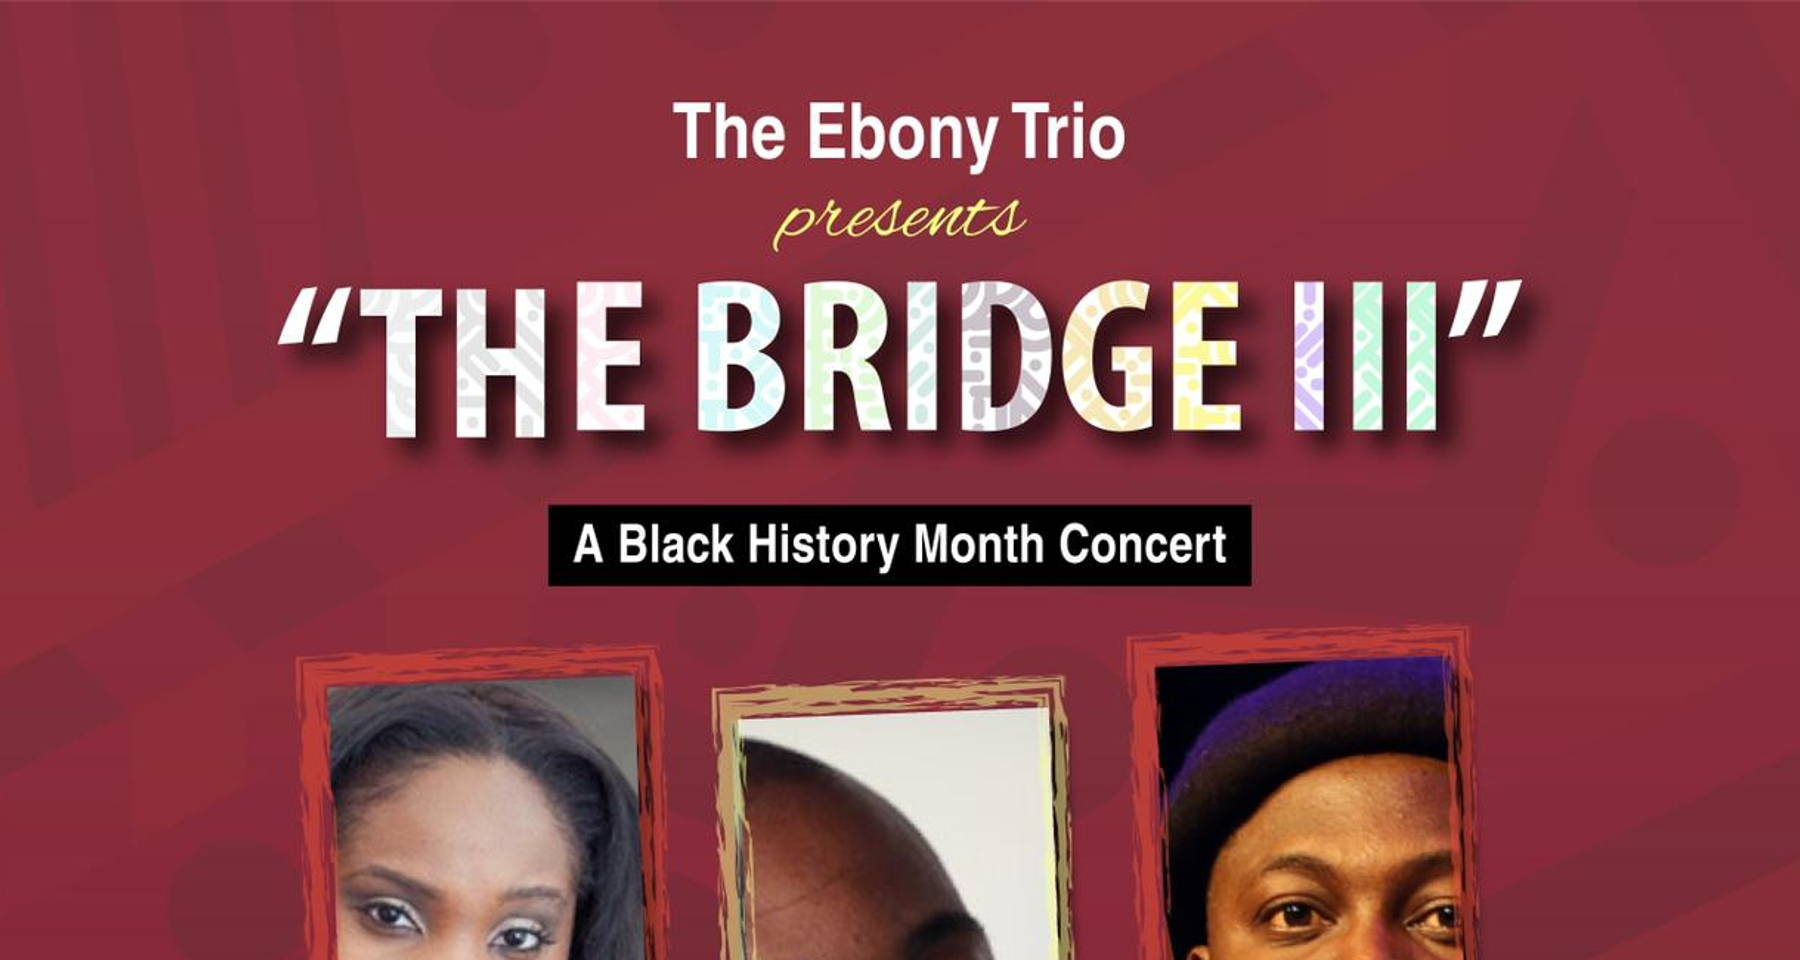 The Bridge Concert III (A Black History Month Concert)